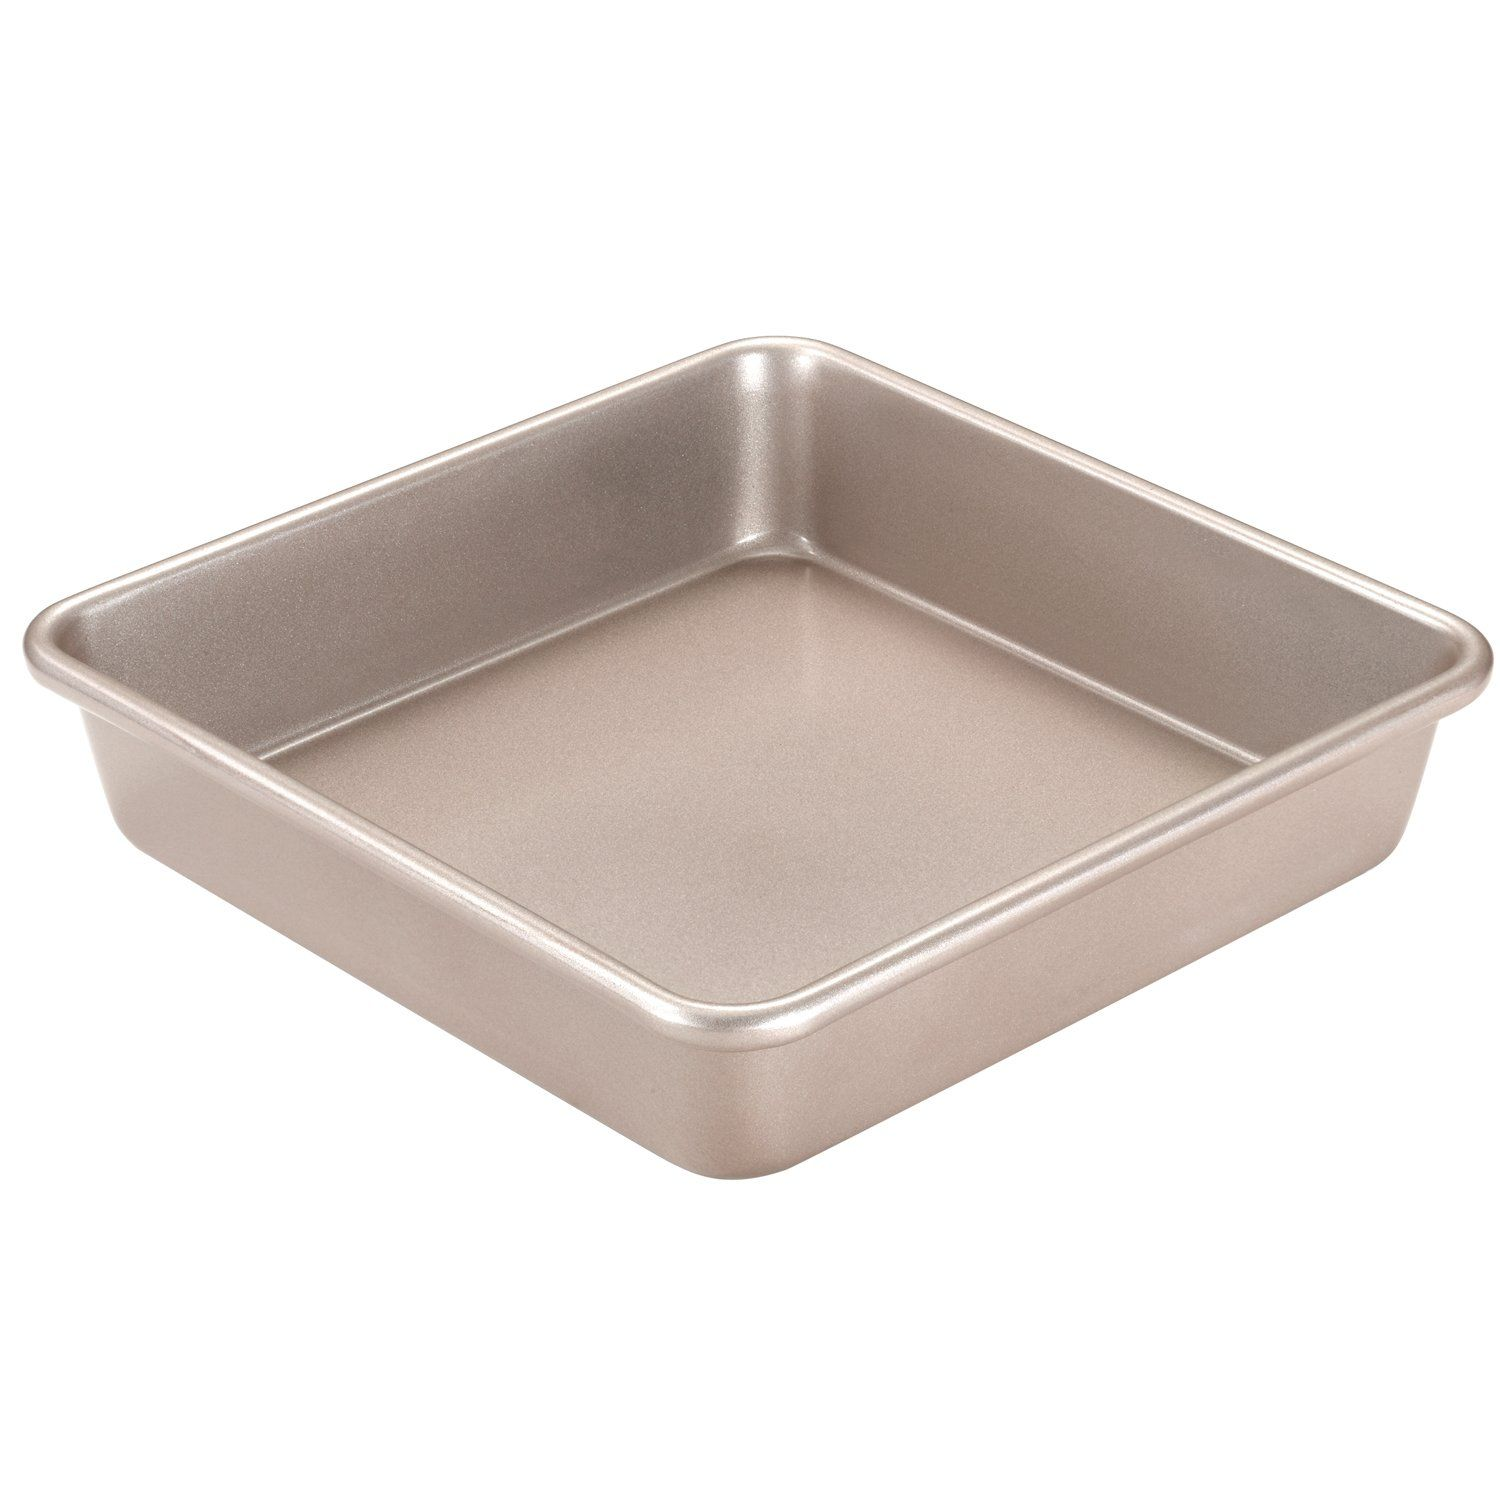 Chefmade 9 Inch Square Cake Pan Non Stick Carbon Steel Bread Pan